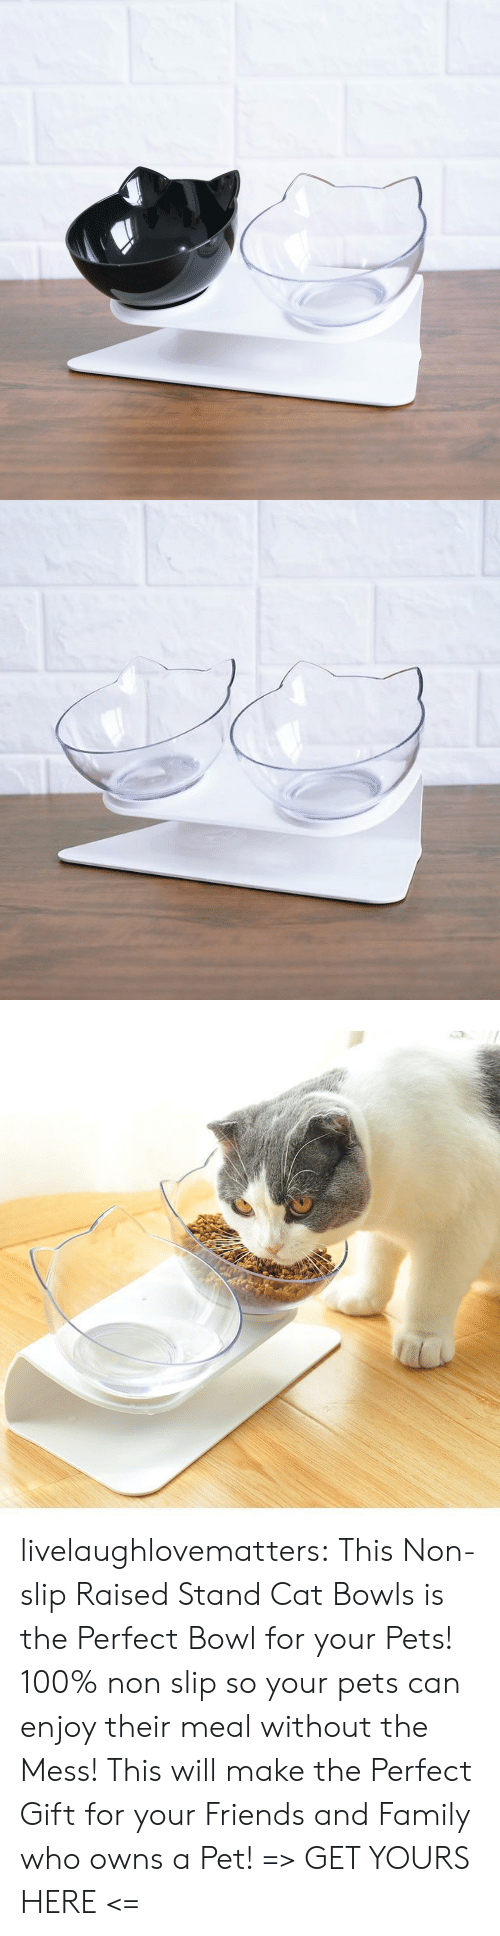 owns: livelaughlovematters: ThisNon-slip Raised Stand Cat Bowls is the Perfect Bowl for your Pets! 100% non slip so your pets can enjoy their meal without the Mess! This will make the Perfect Gift for your Friends and Family who owns a Pet! => GET YOURS HERE <=